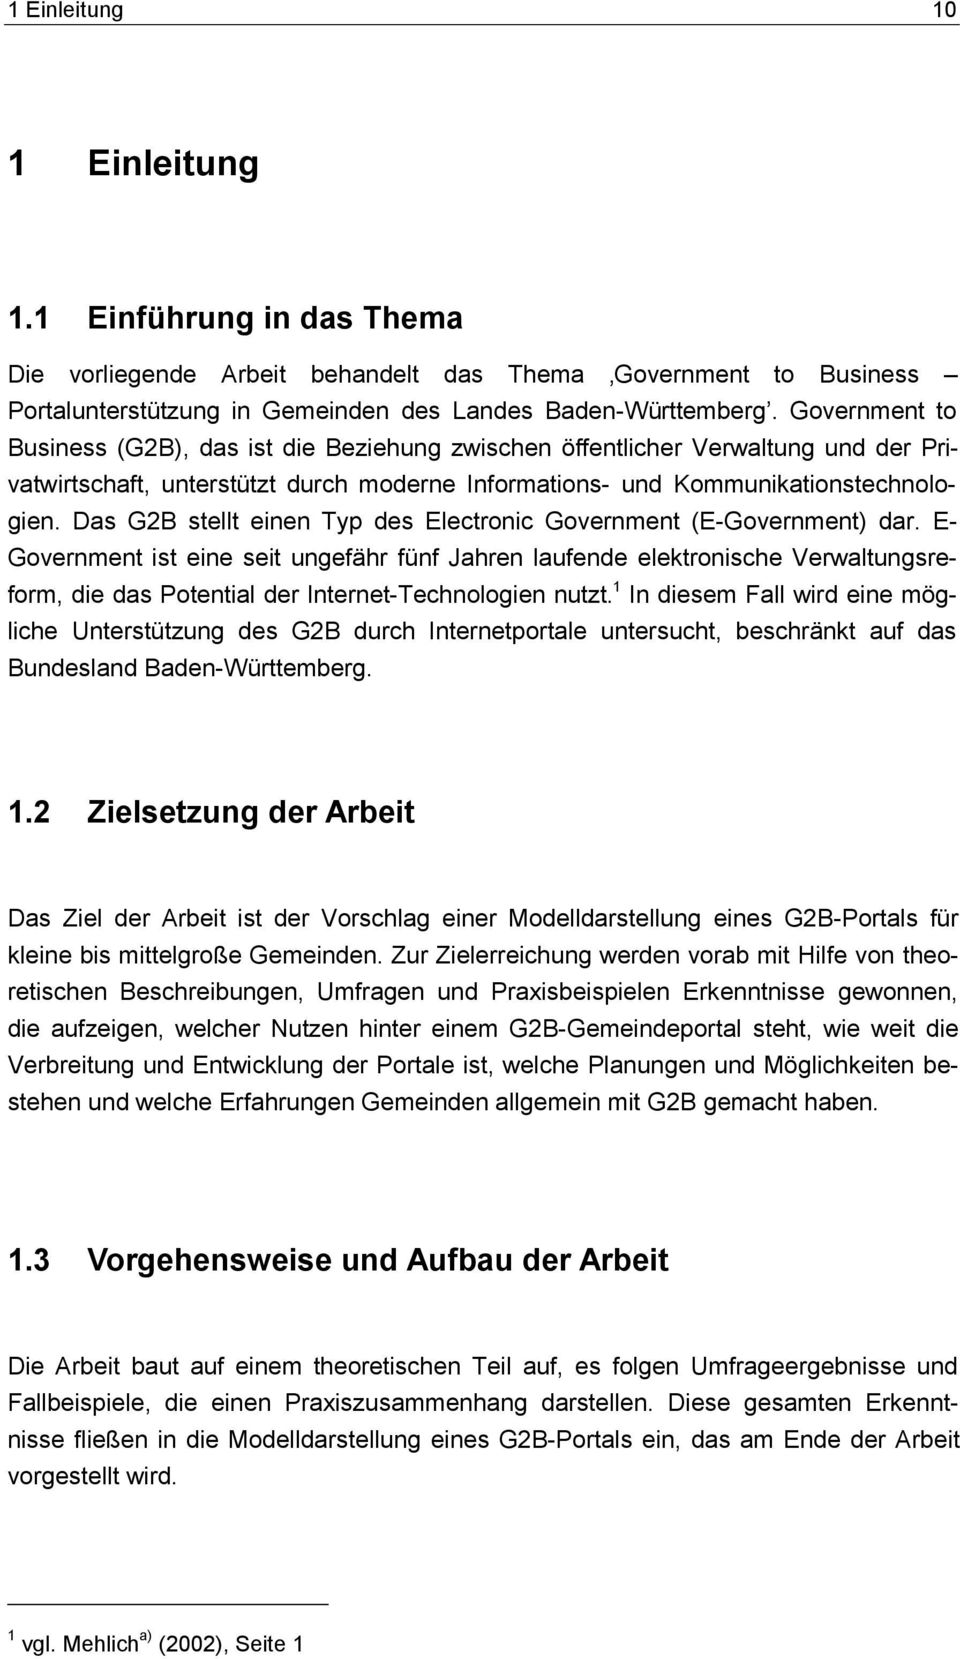 Das G2B stellt einen Typ des Electronic Government (E-Government) dar.